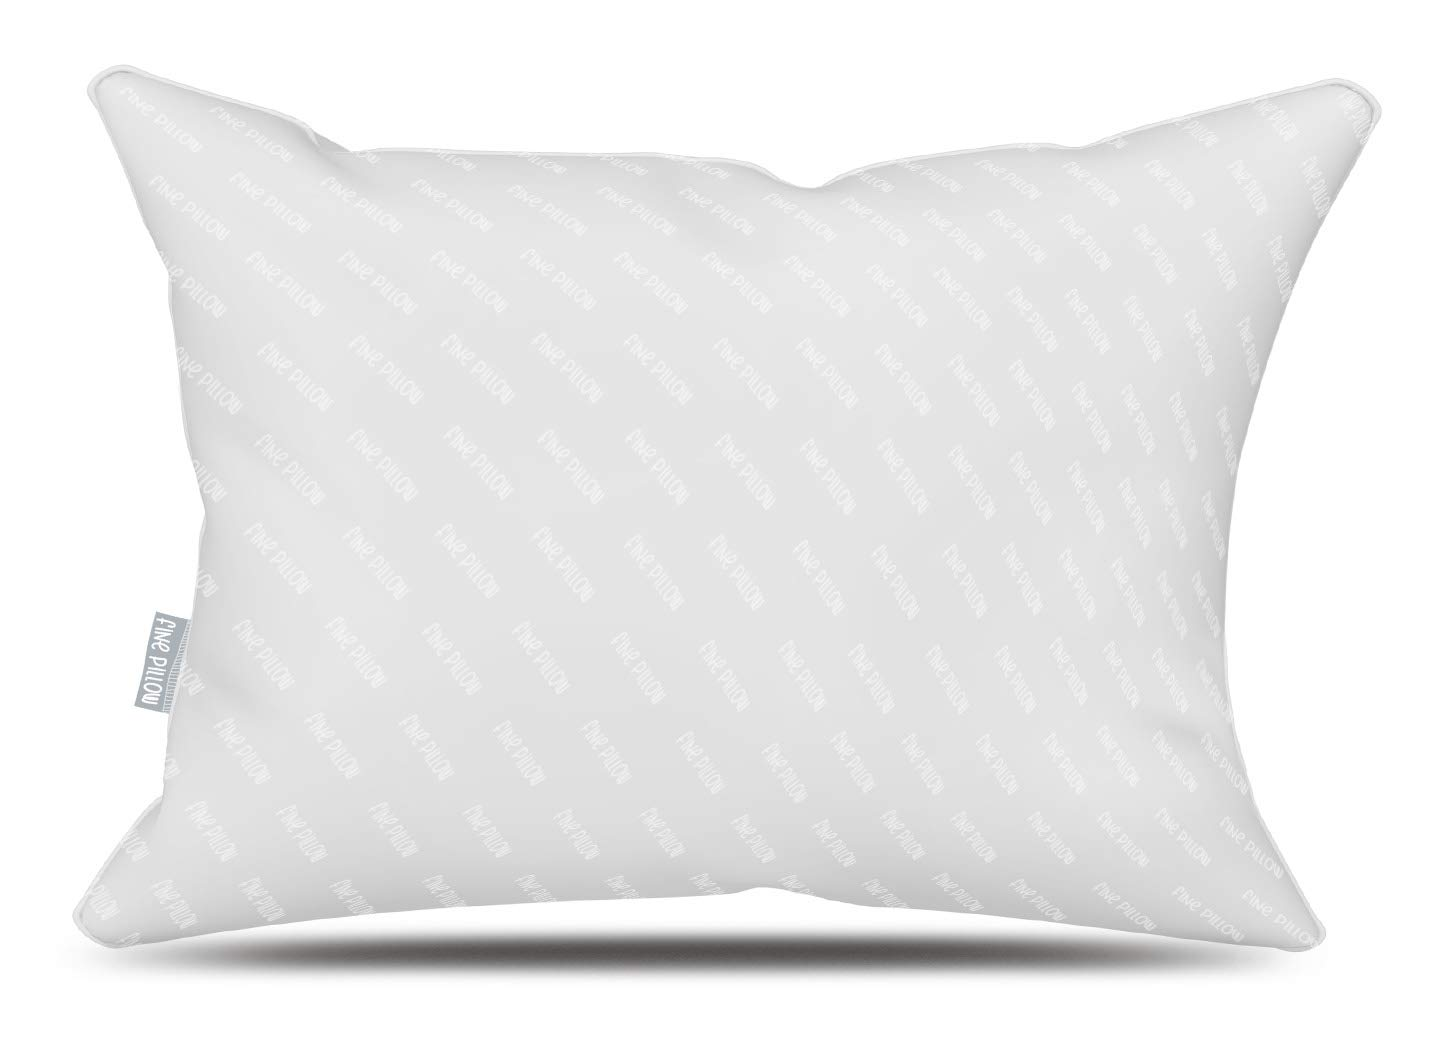 Fine Pillow - Sleeping Bed Pillows for Neck & Back Pain Relief